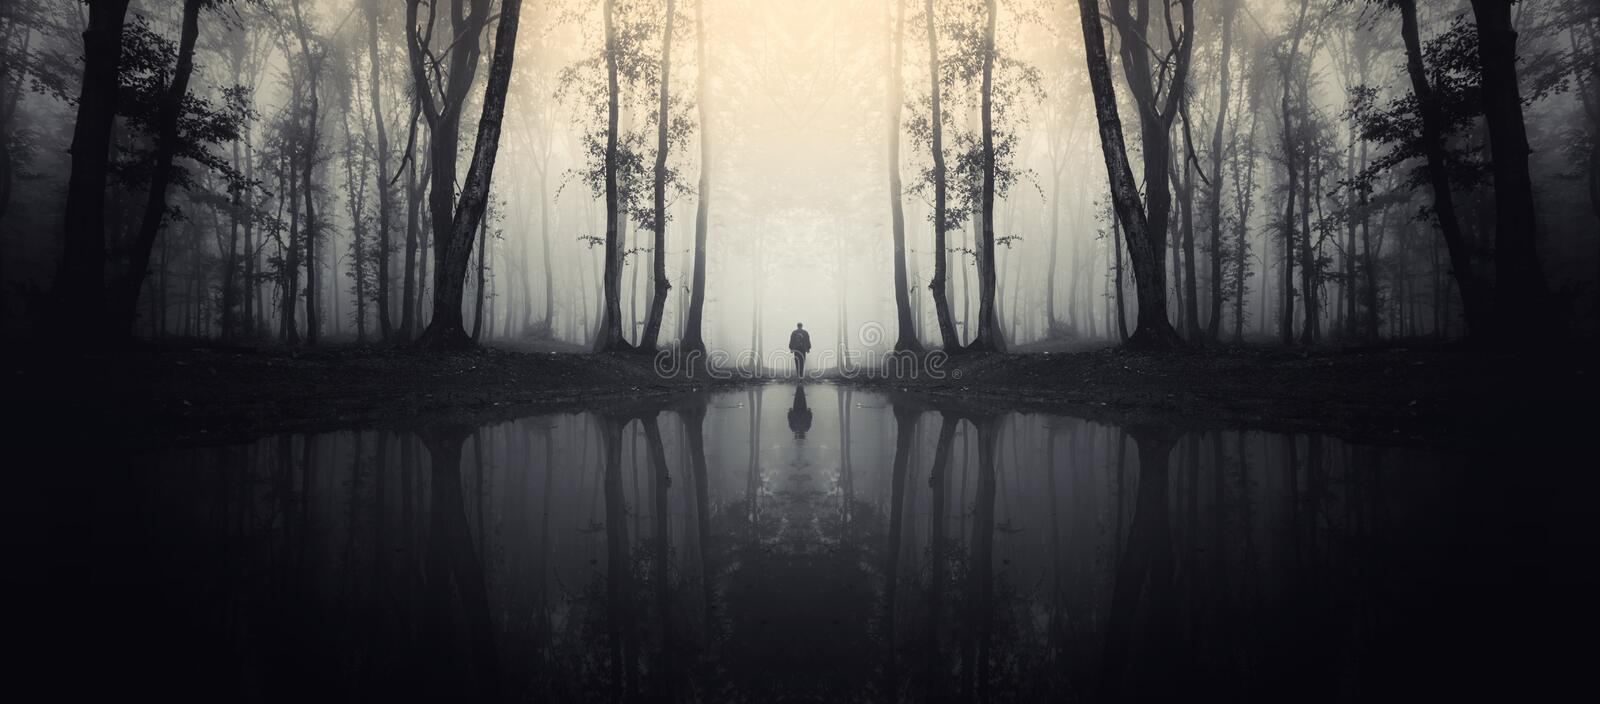 Haunted lake in forest with man silhouette. Man on lake edge in dark mysterious haunted symmetrical forest with fog royalty free stock photo